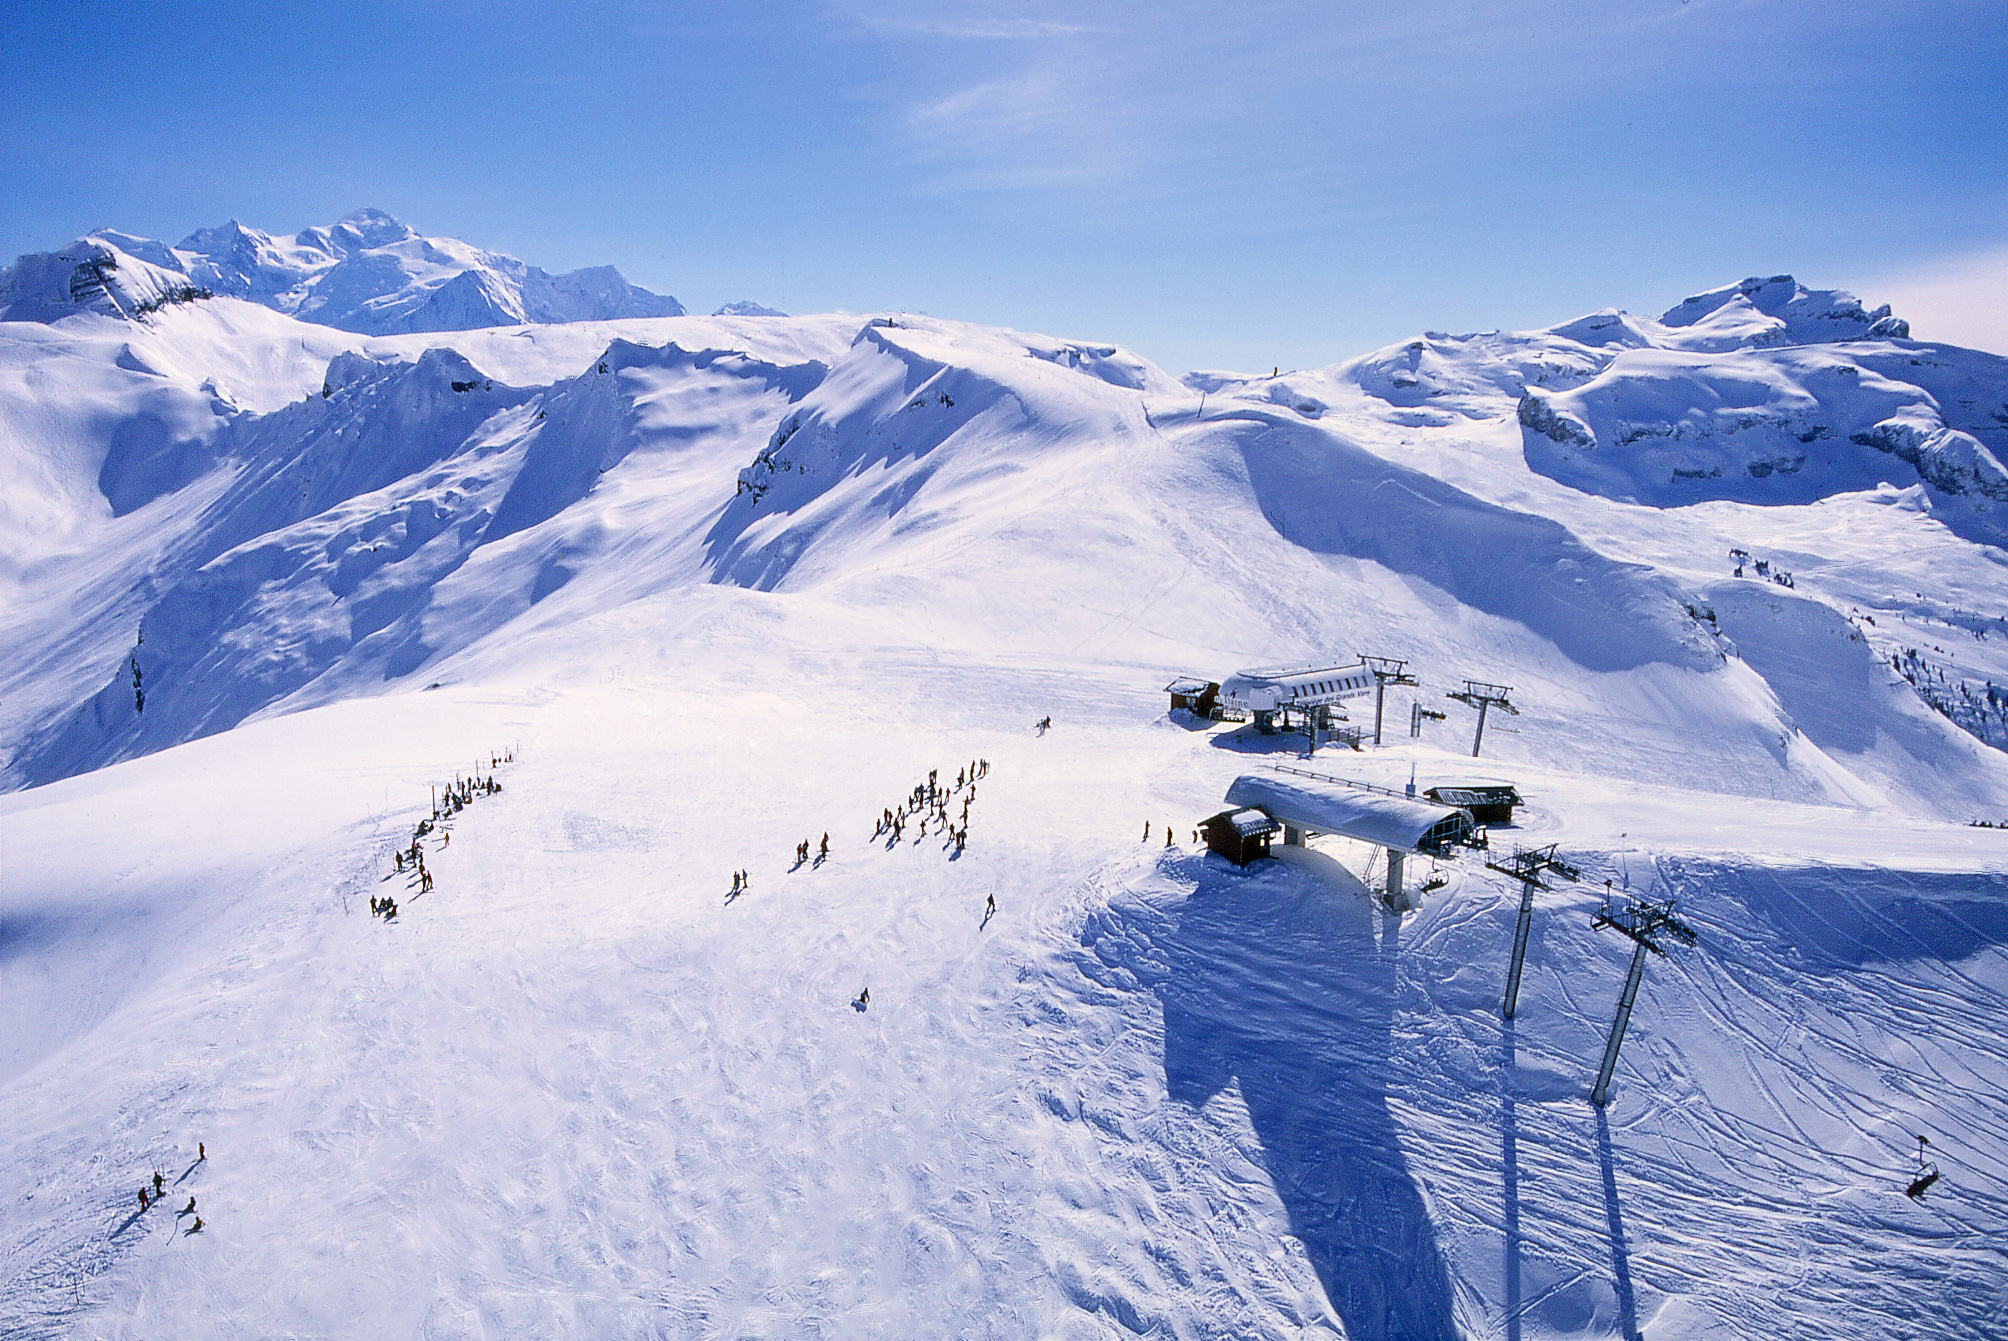 flaine_573302_twolifts